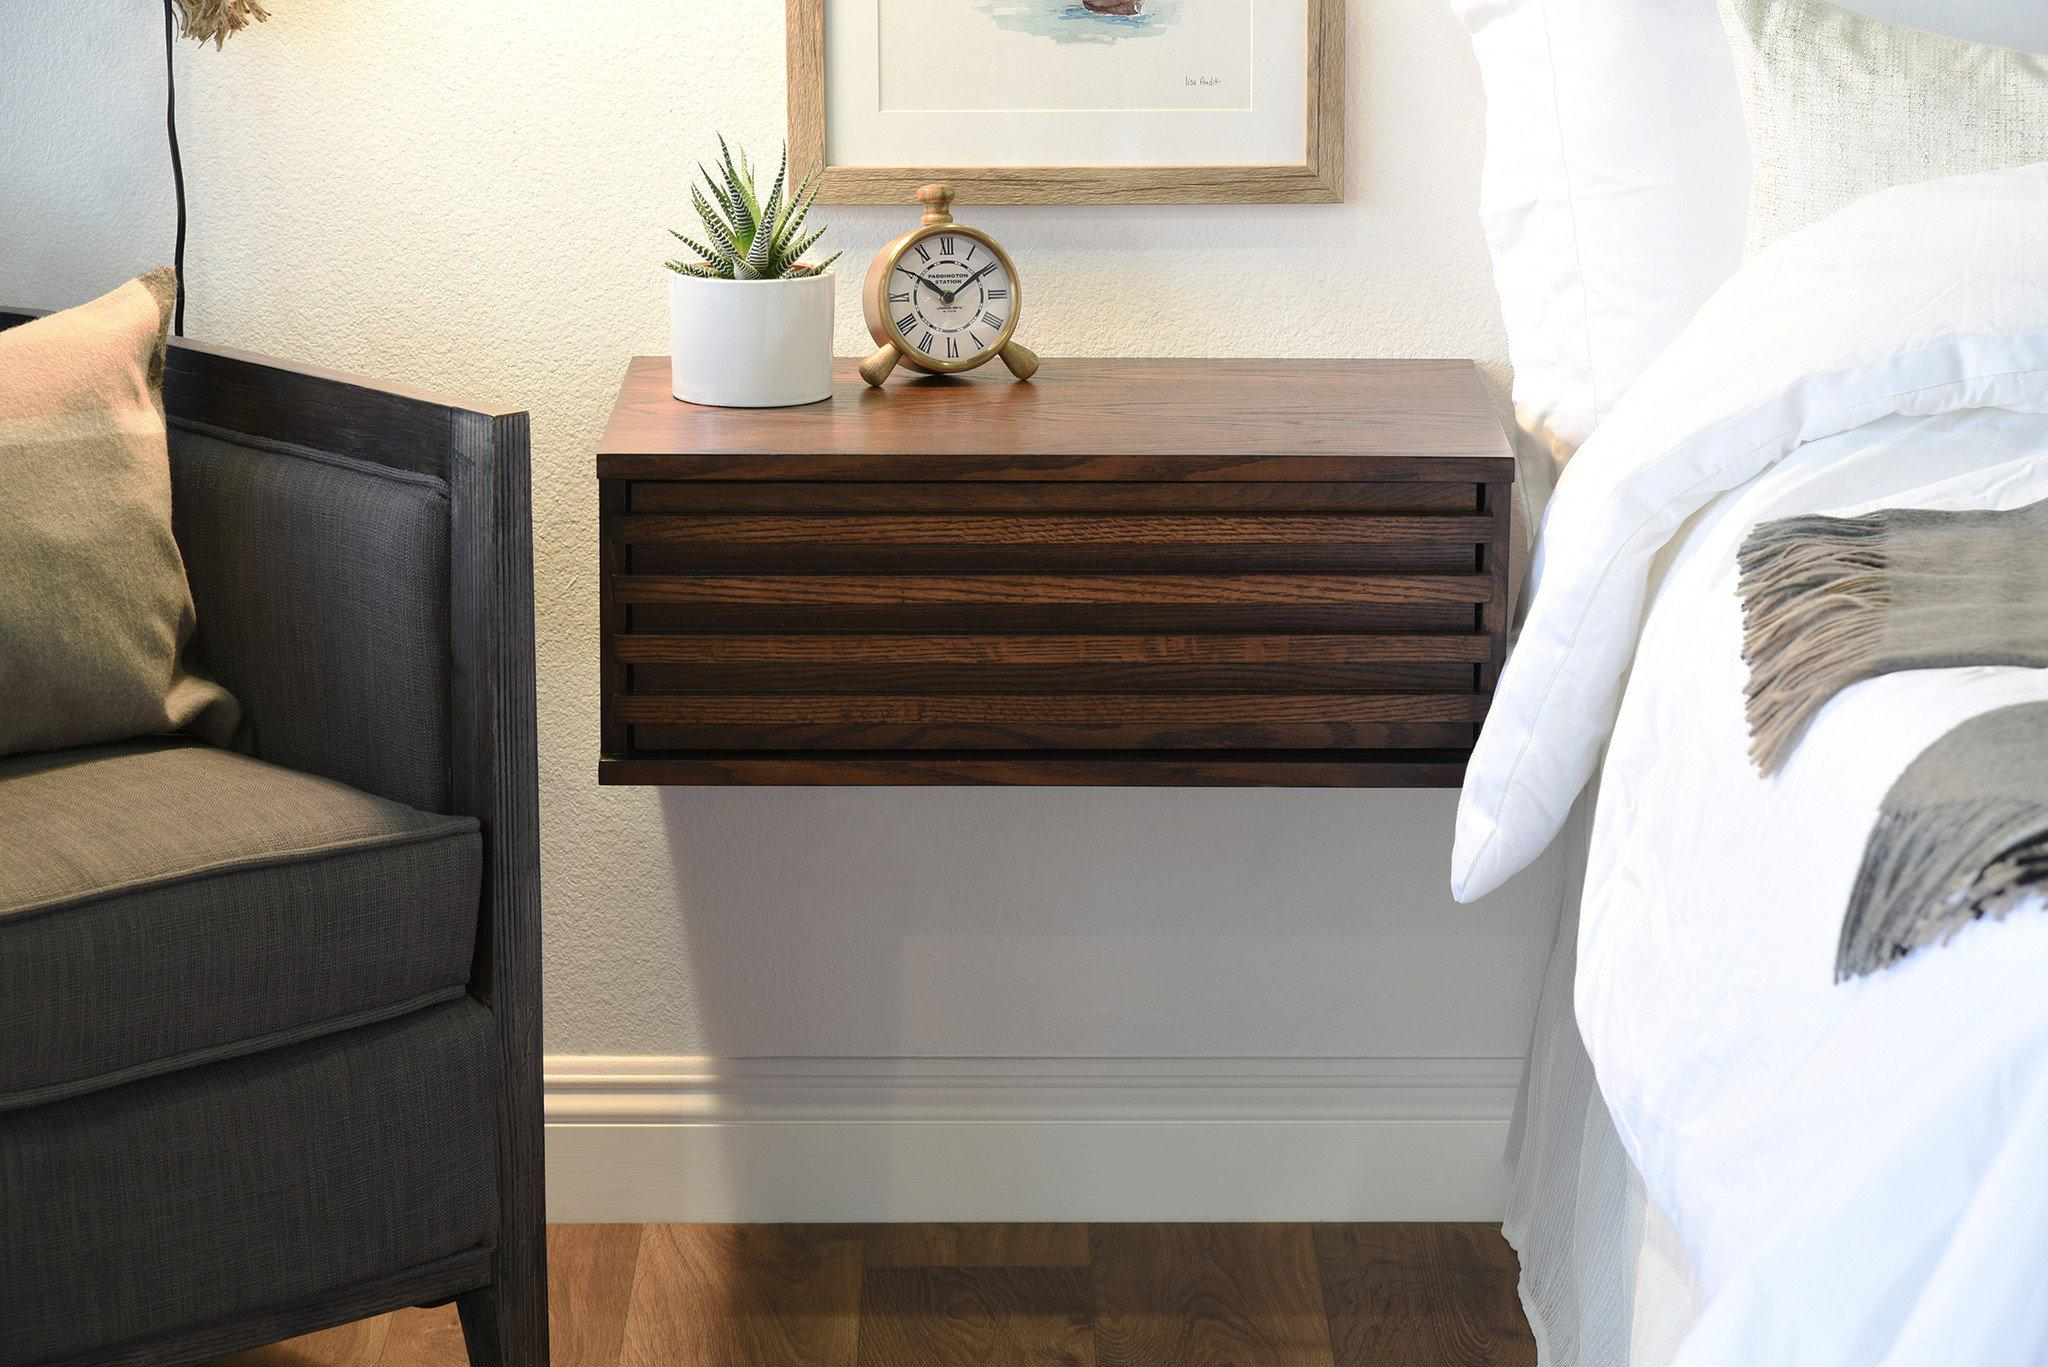 Picture of: Floating Nightstand Shelf